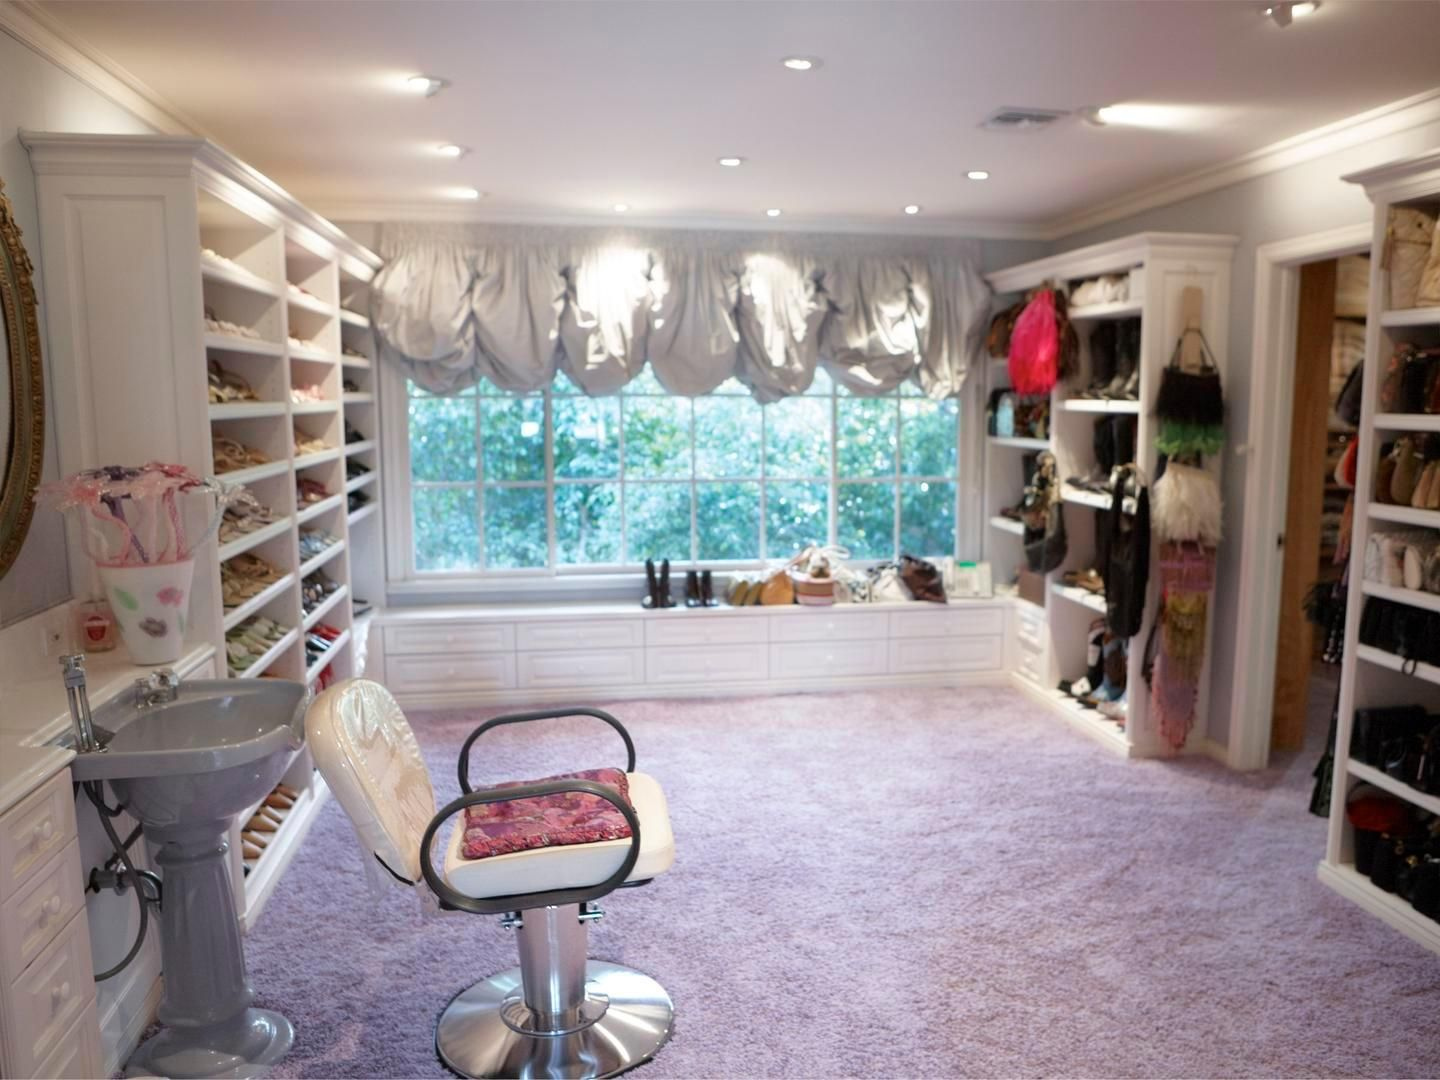 CATHERINE OPIE The Shoe Closet from the 700 Nimes Road Portfolio, 2010-11